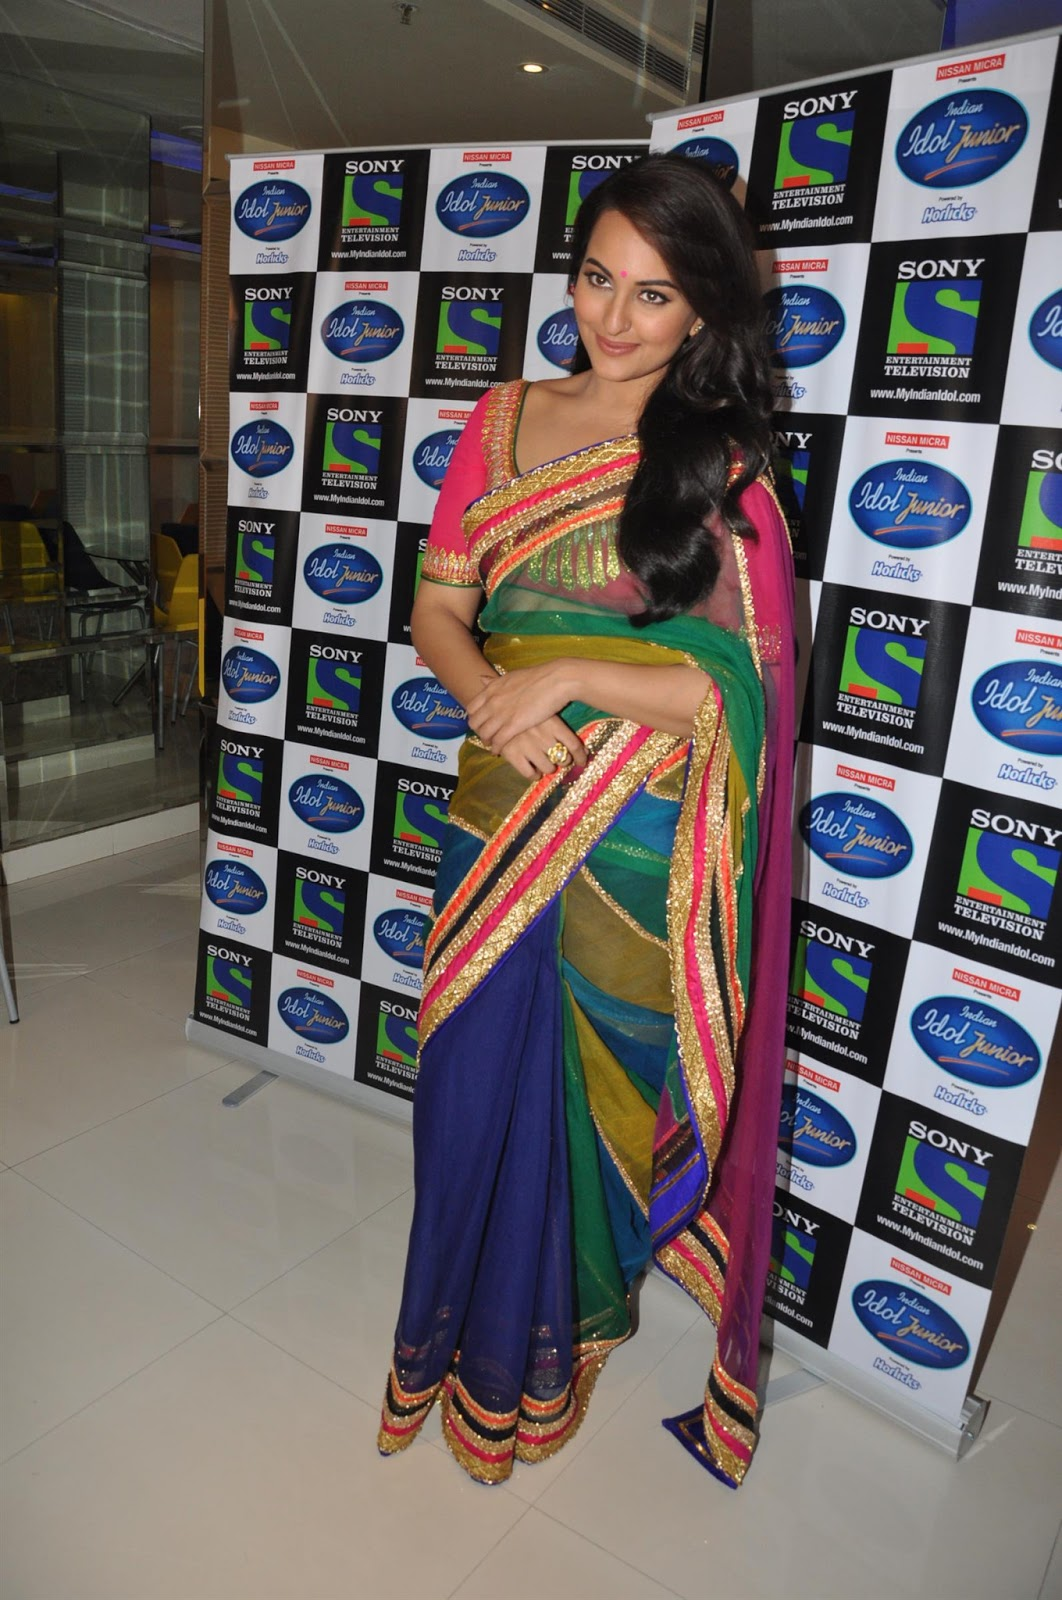 Sonakshi Sinha Looks Spicy In Colorful Saree Photoshoot